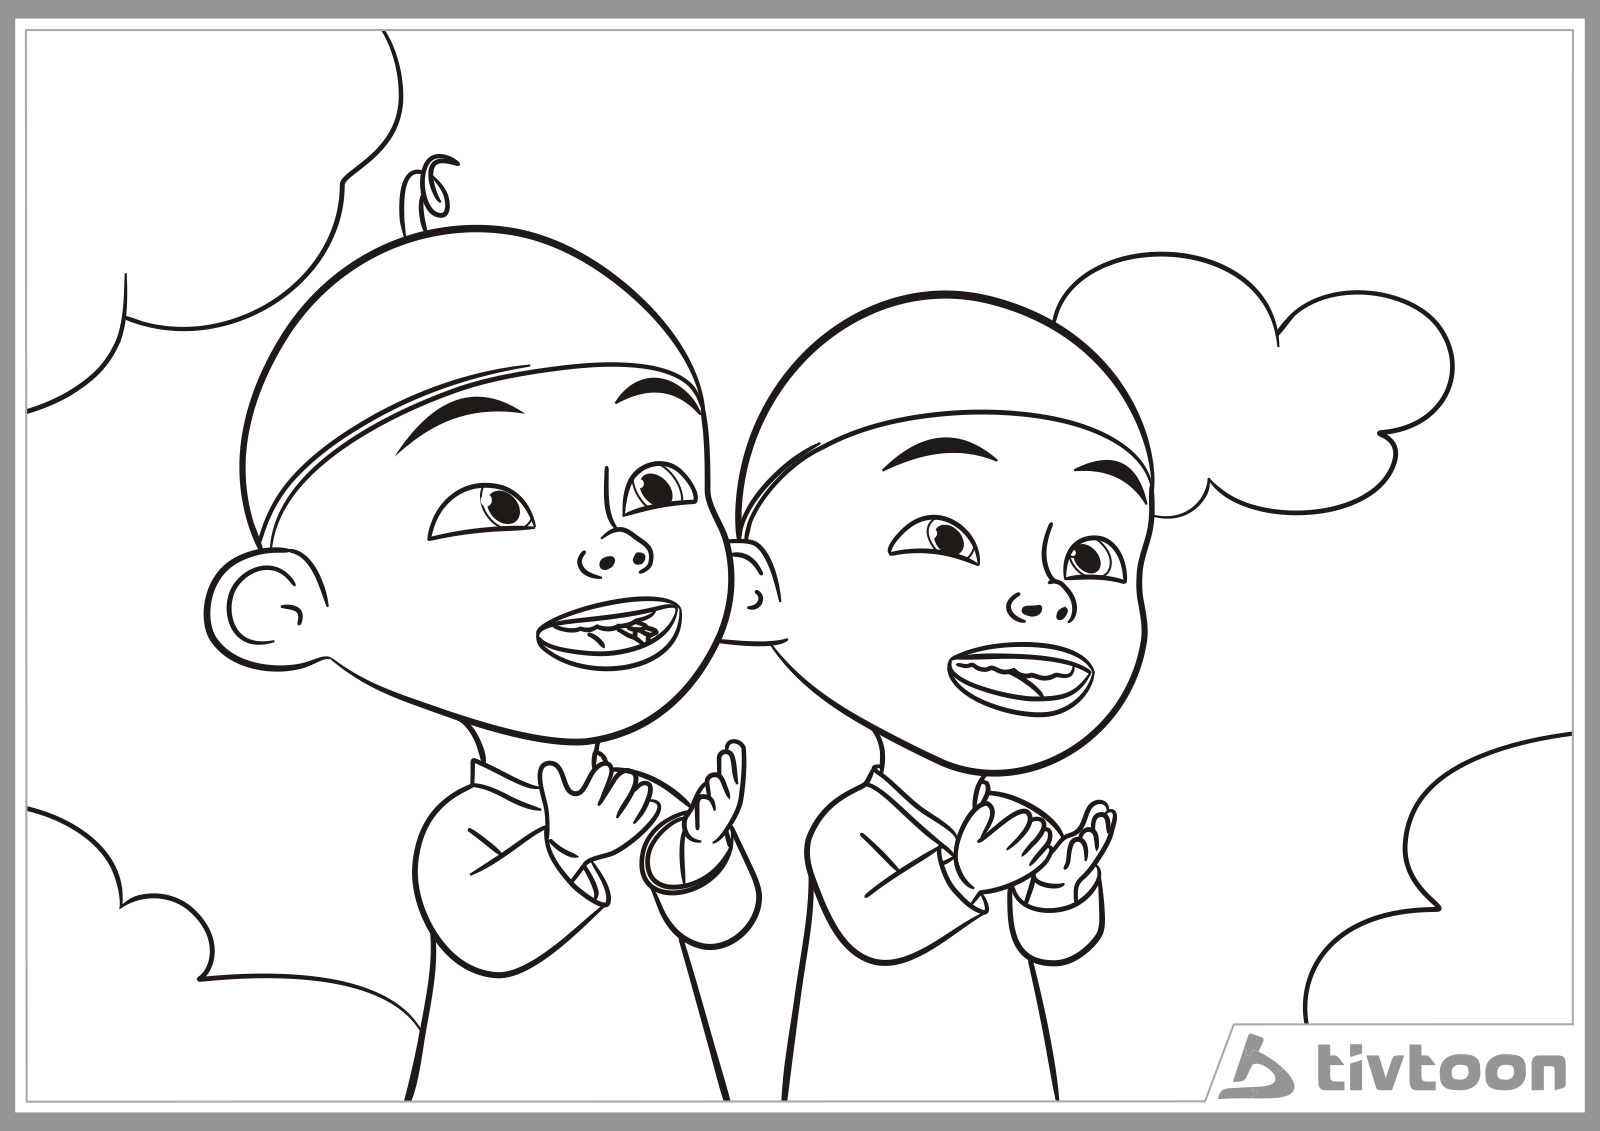 Upin Ipin Printable Coloring Pages